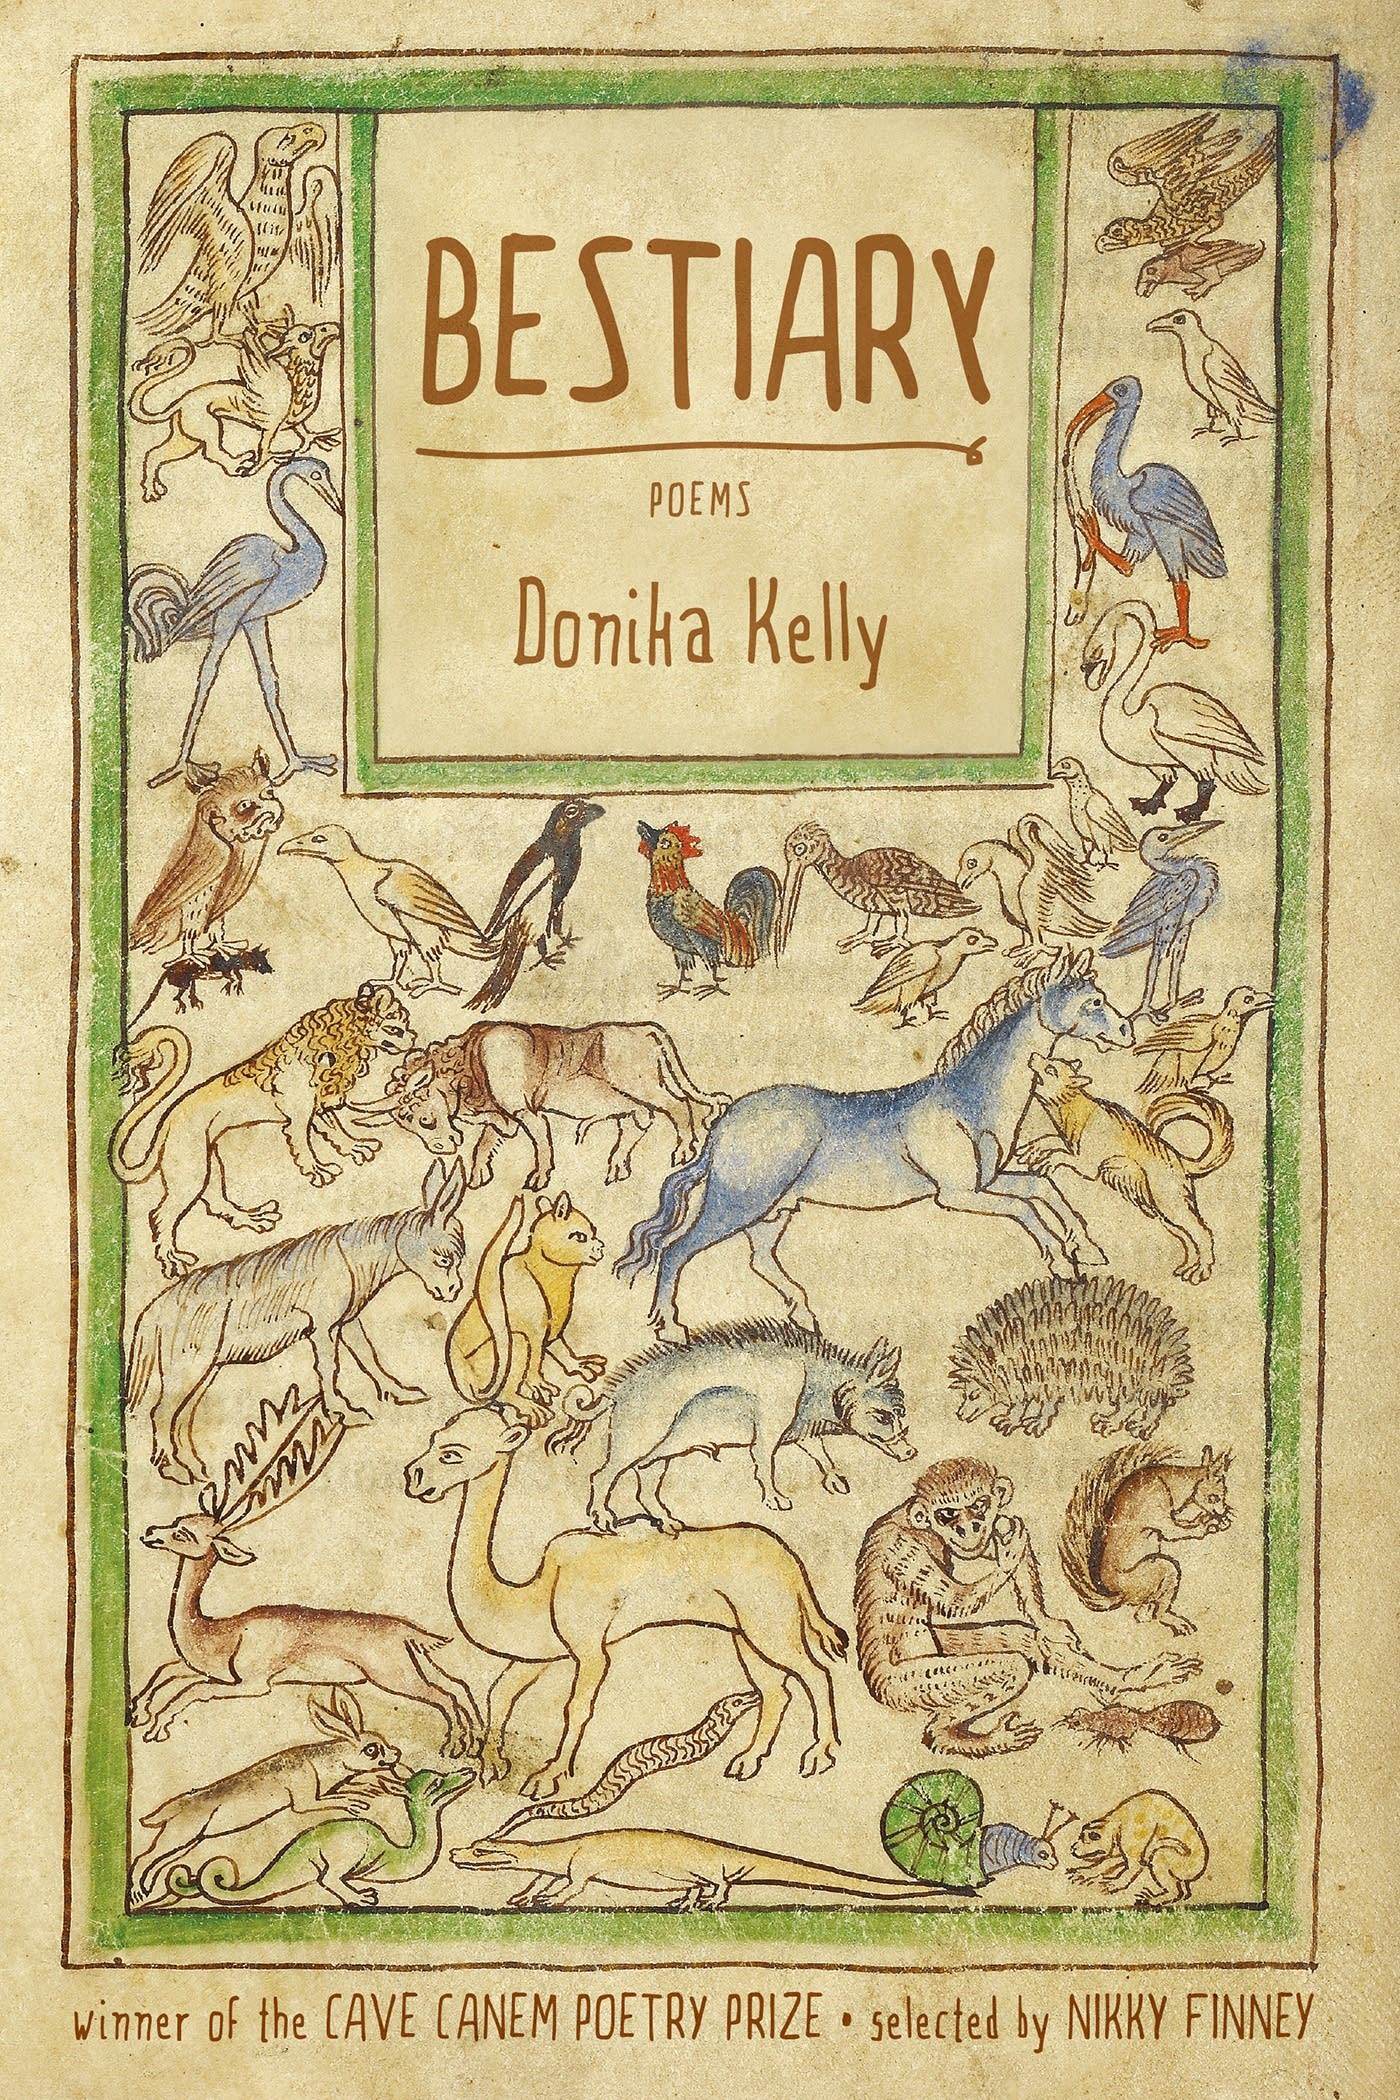 'Bestiary' by Donika Kelly